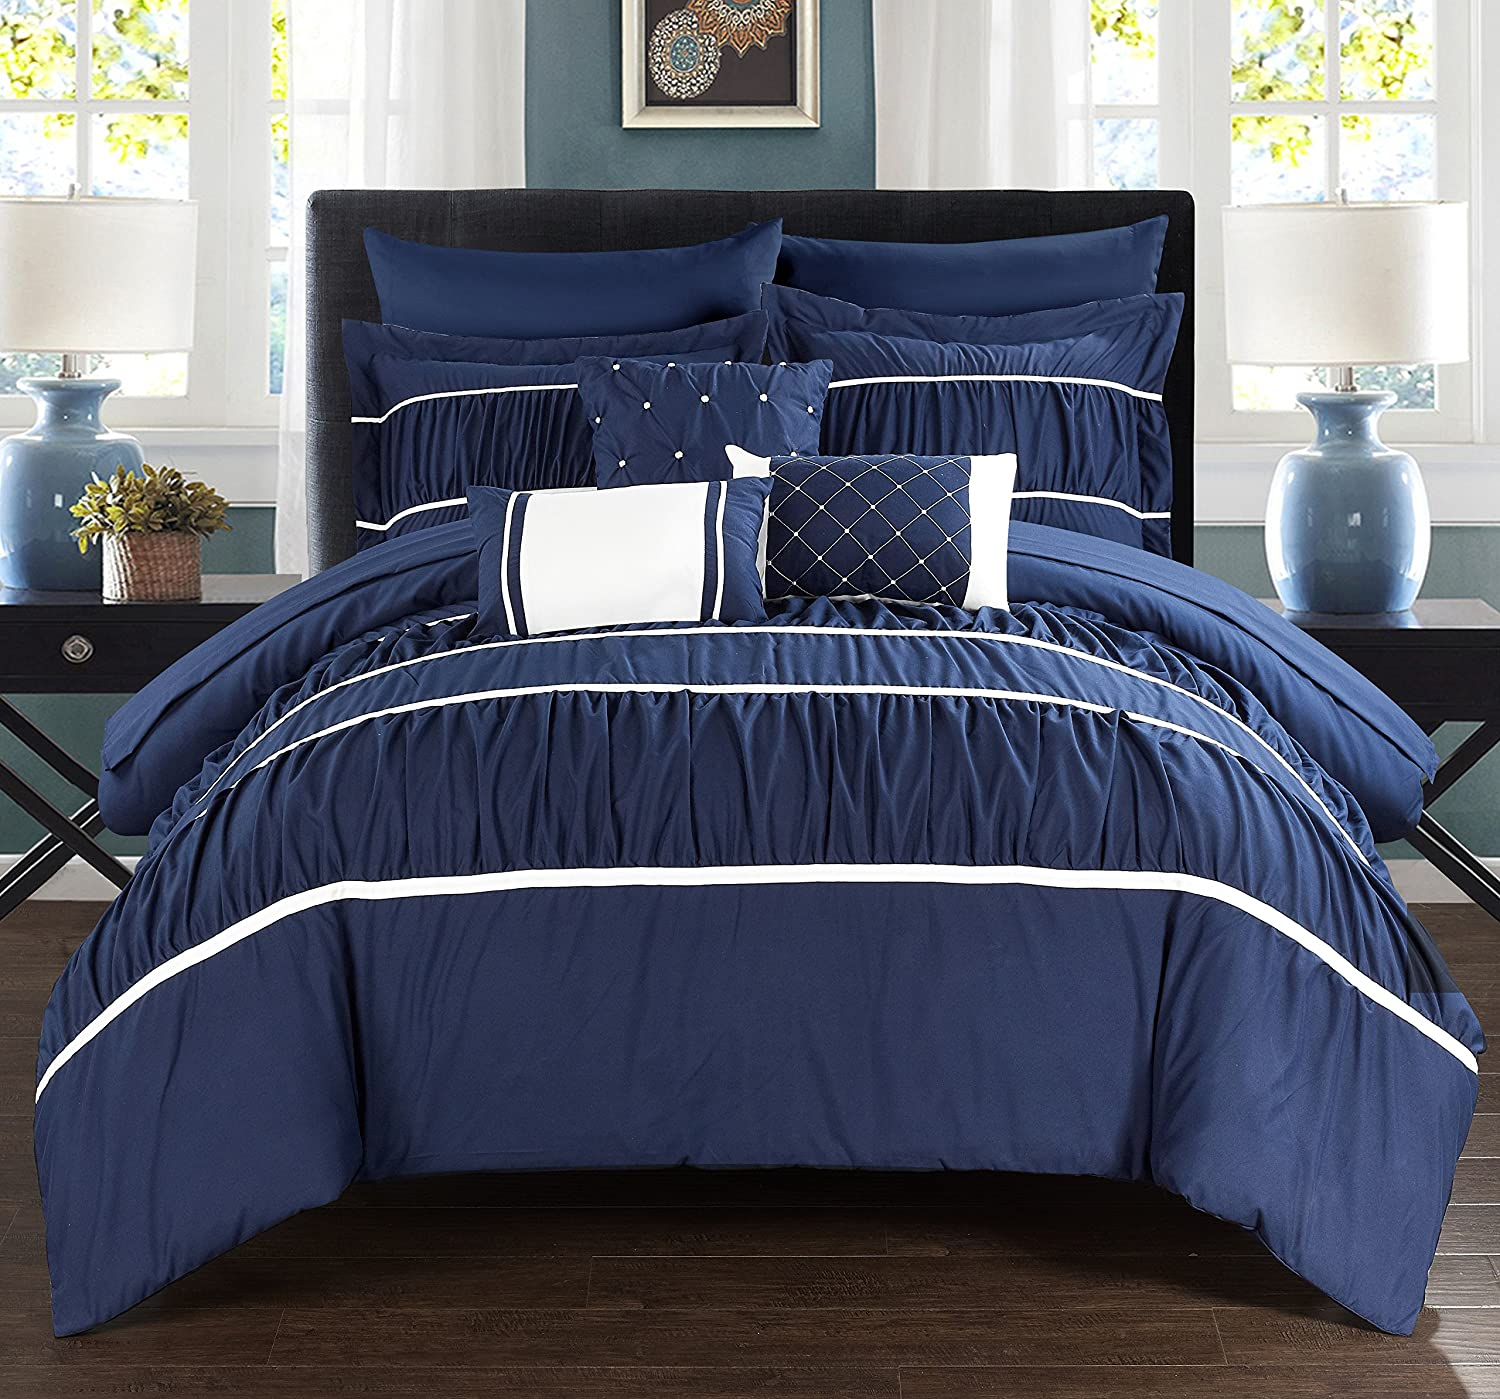 Pleated & Ruffled Bed In A Bag Comforter Set